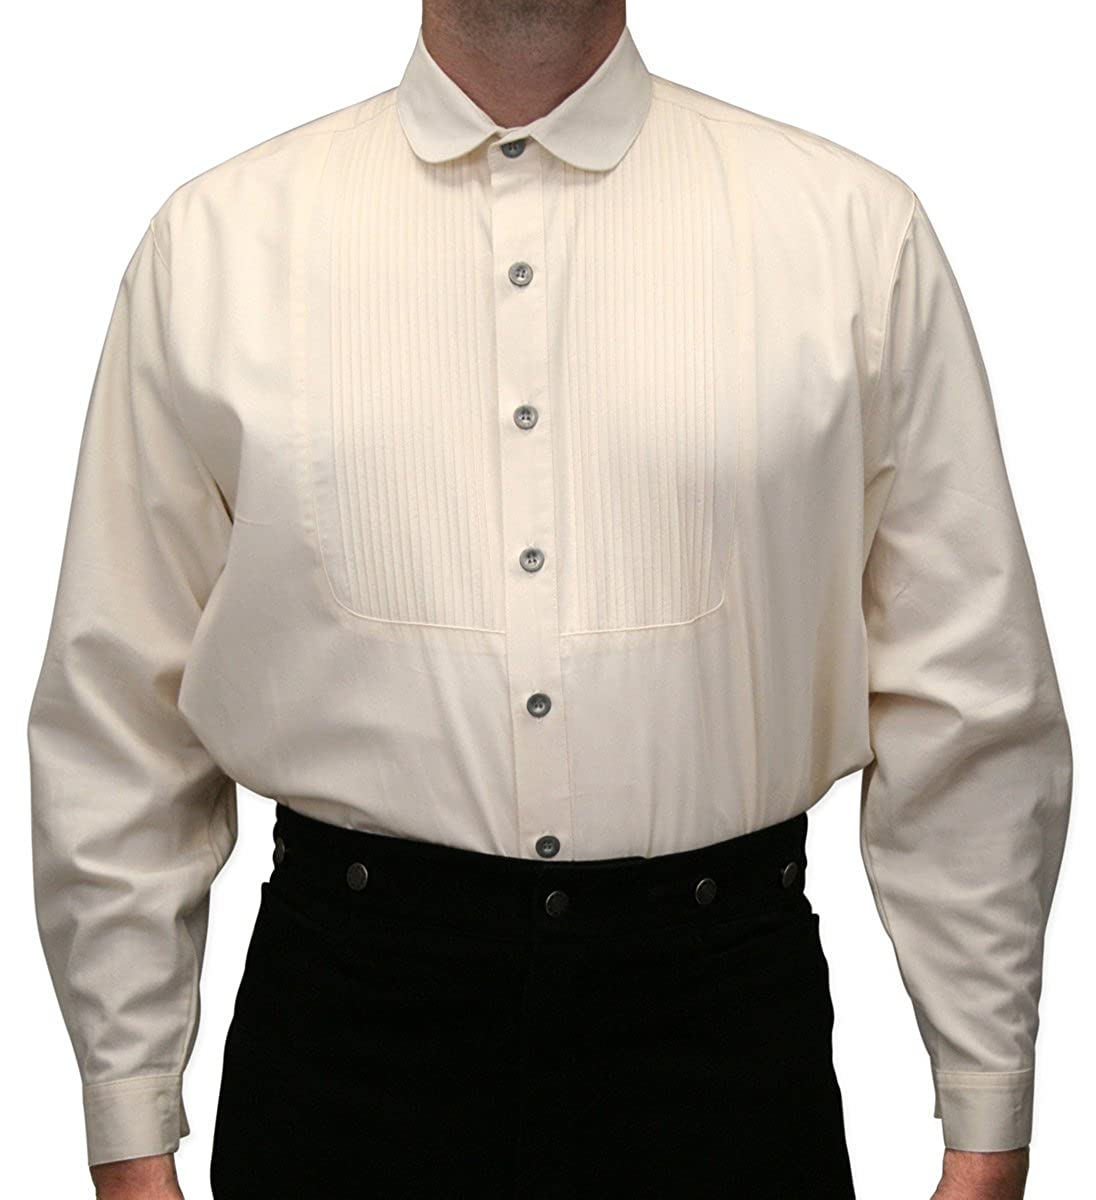 Victorian Men's Clothing Mens Sinclair Edwardian Club Collar Dress Shirt $59.95 AT vintagedancer.com